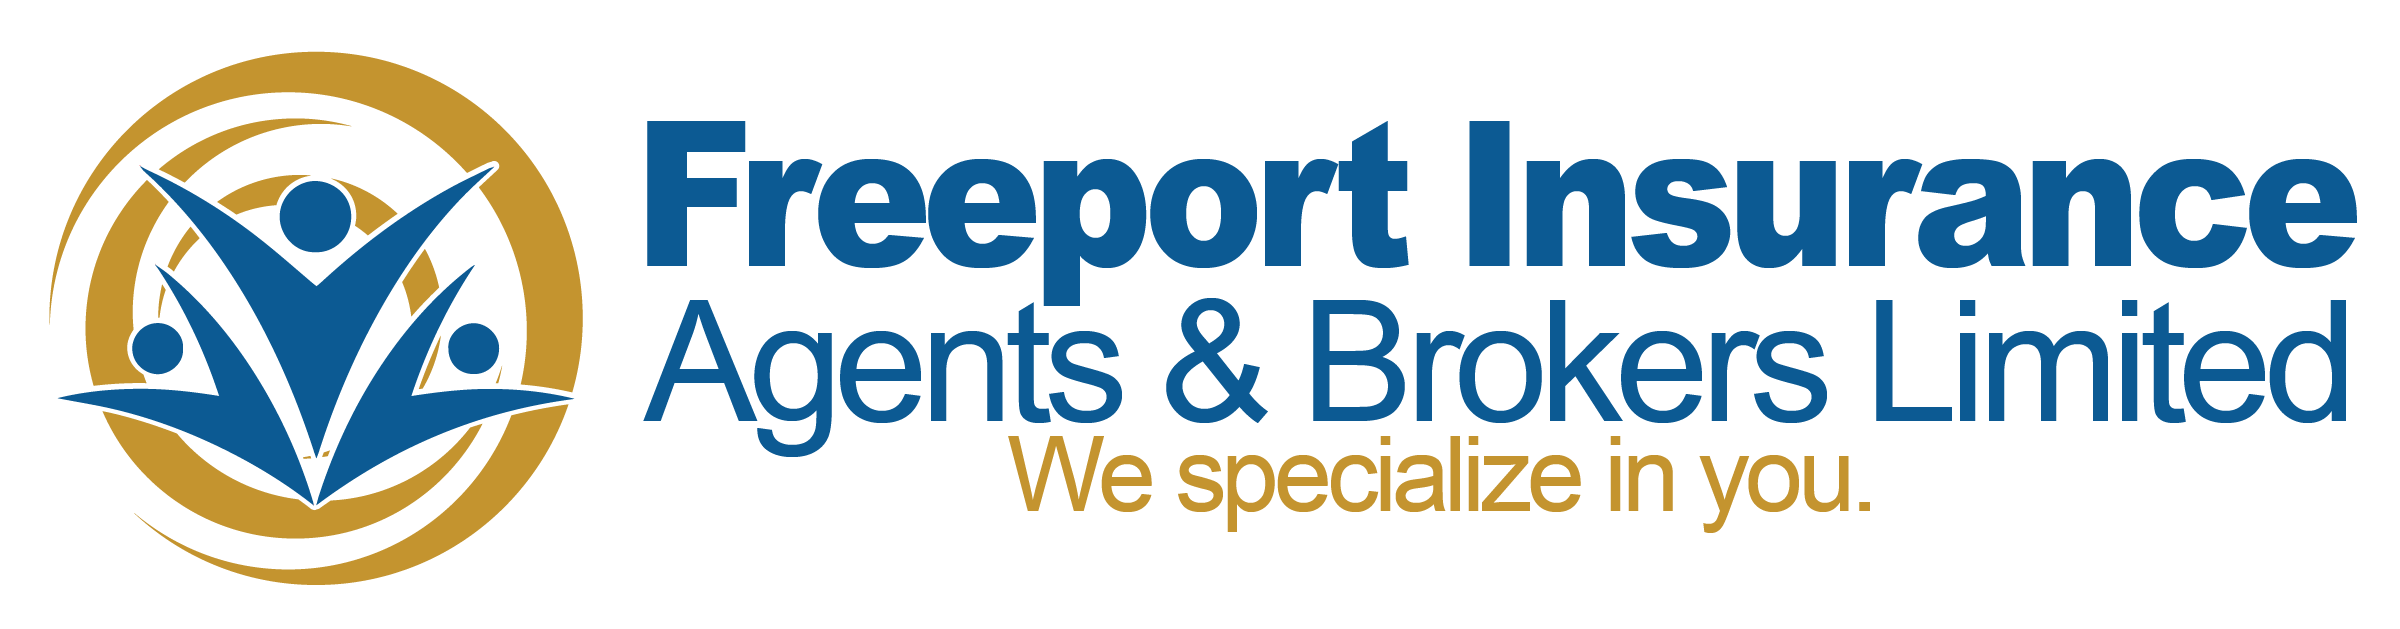 Freeport Insurance Agents & Brokers